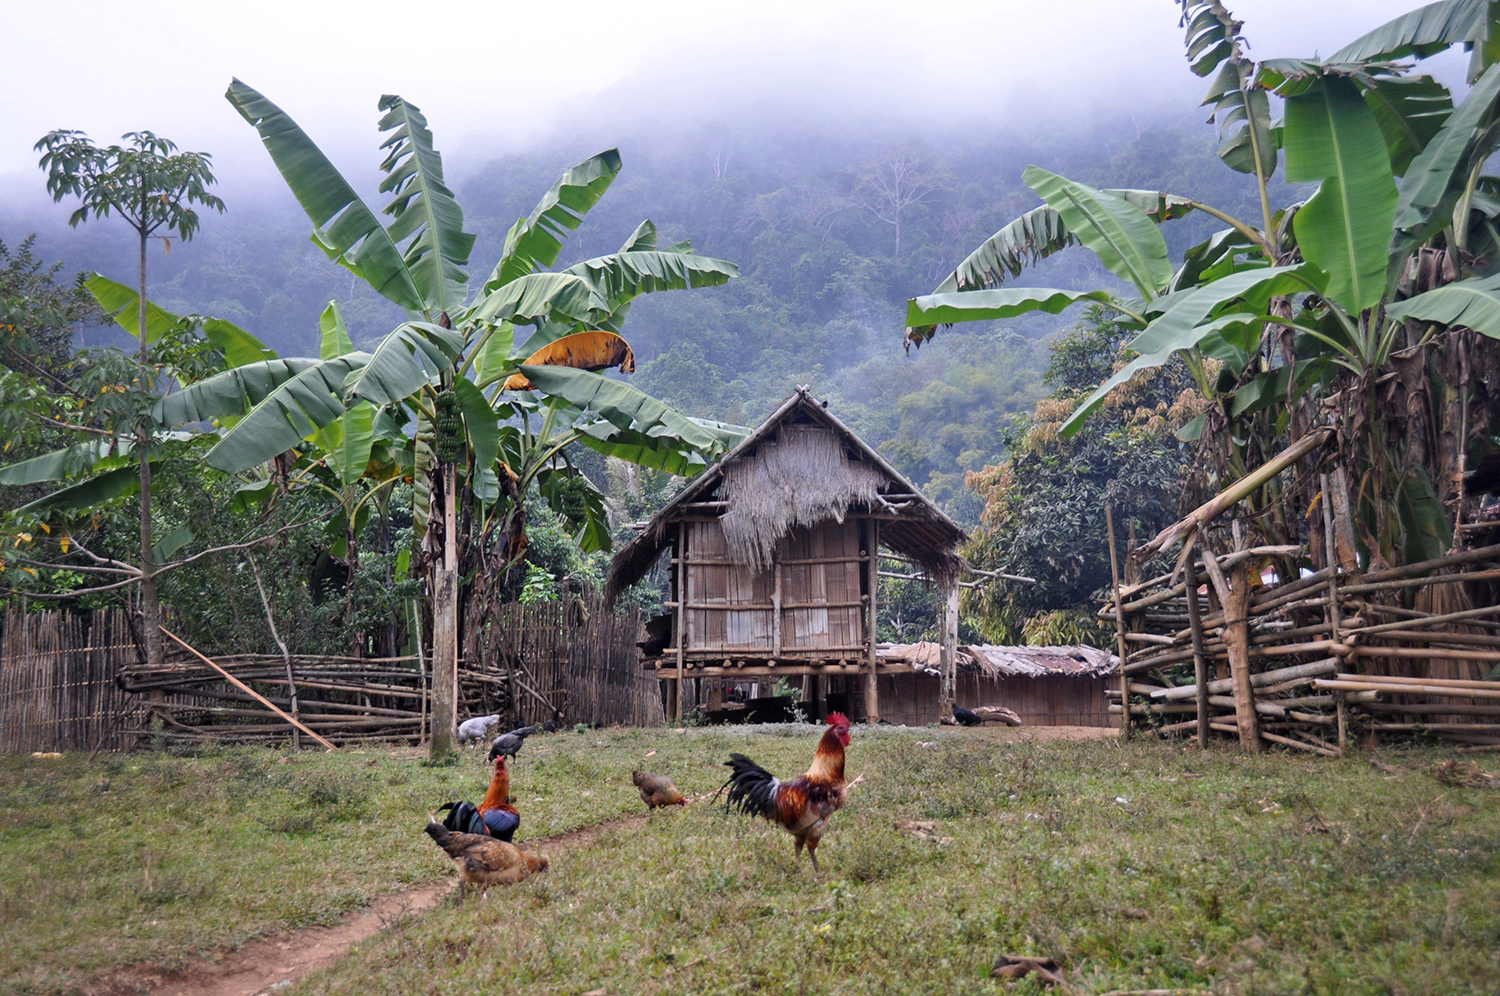 Rural village Laos